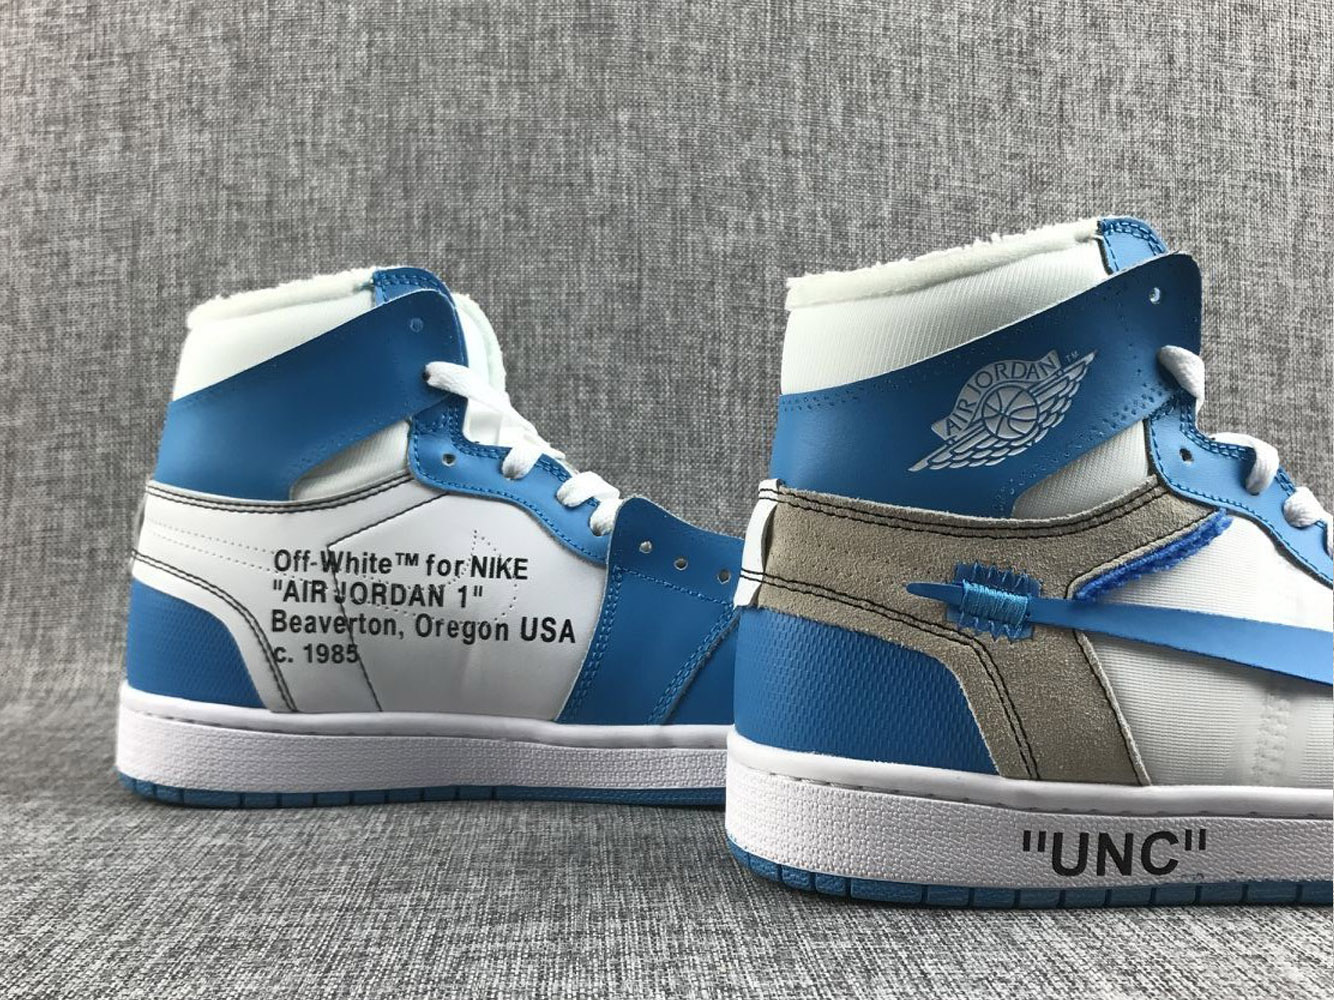 super specials cheap huge selection of New Style Off-White X Air Jordan 1 'UNC' White/University ...